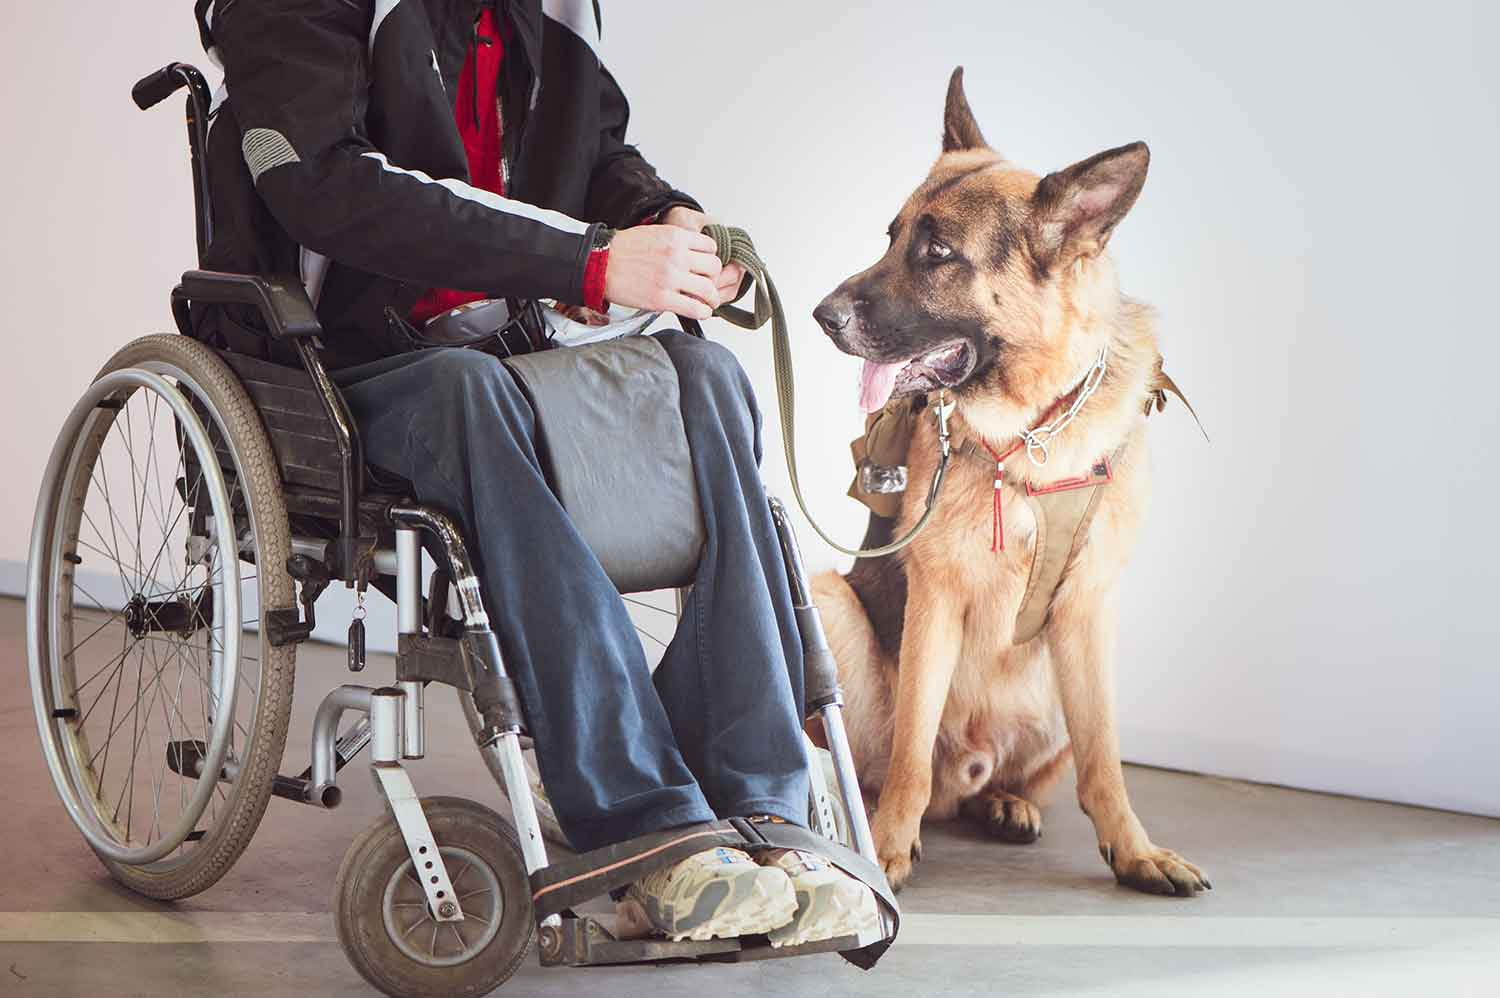 Service Dog Training Phoenix Experts - Desert Sky K9